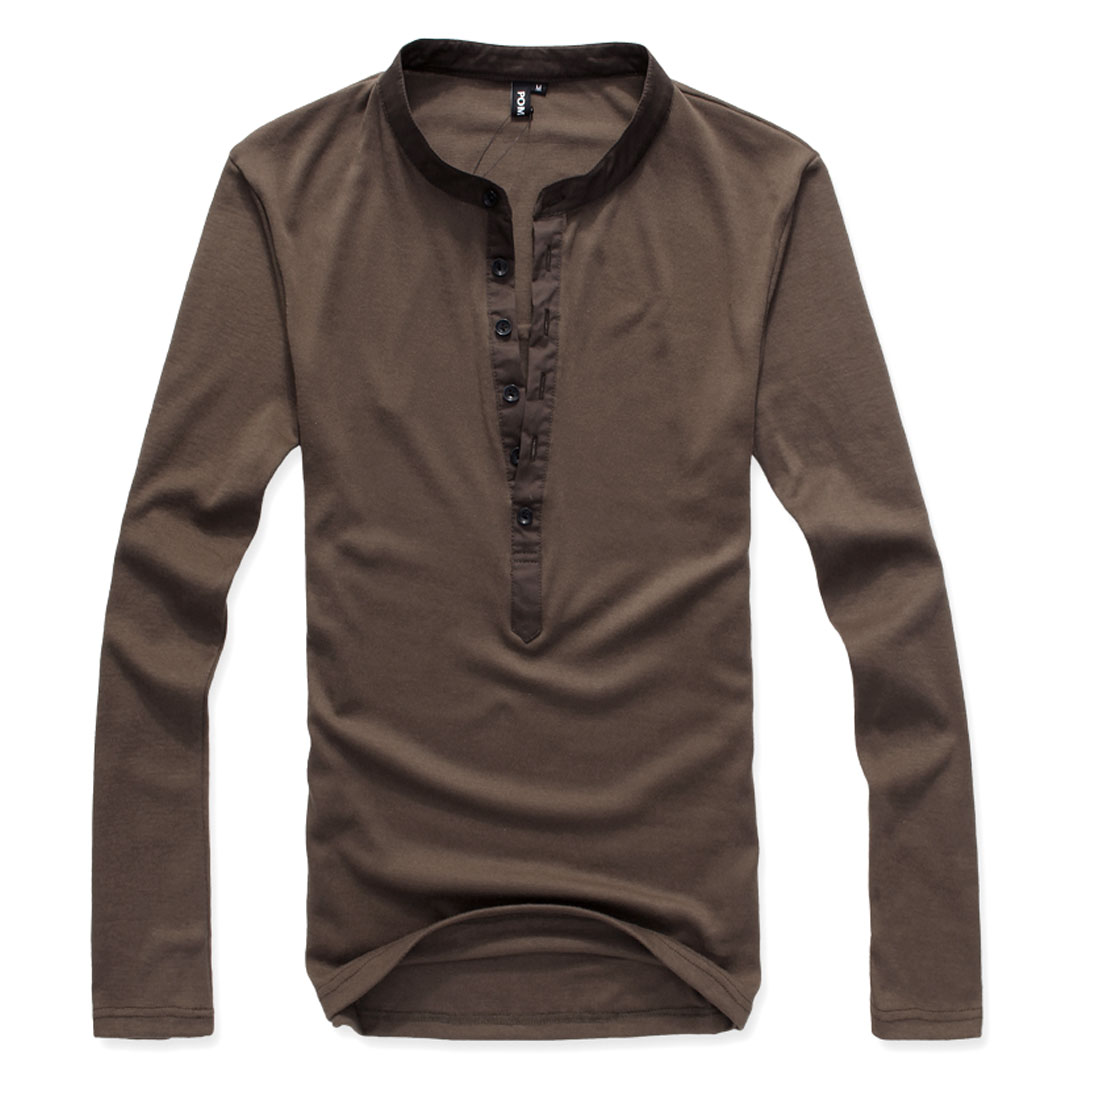 Men Coffee Color Leisure Basic Pullover Stretchy Shirt Top M